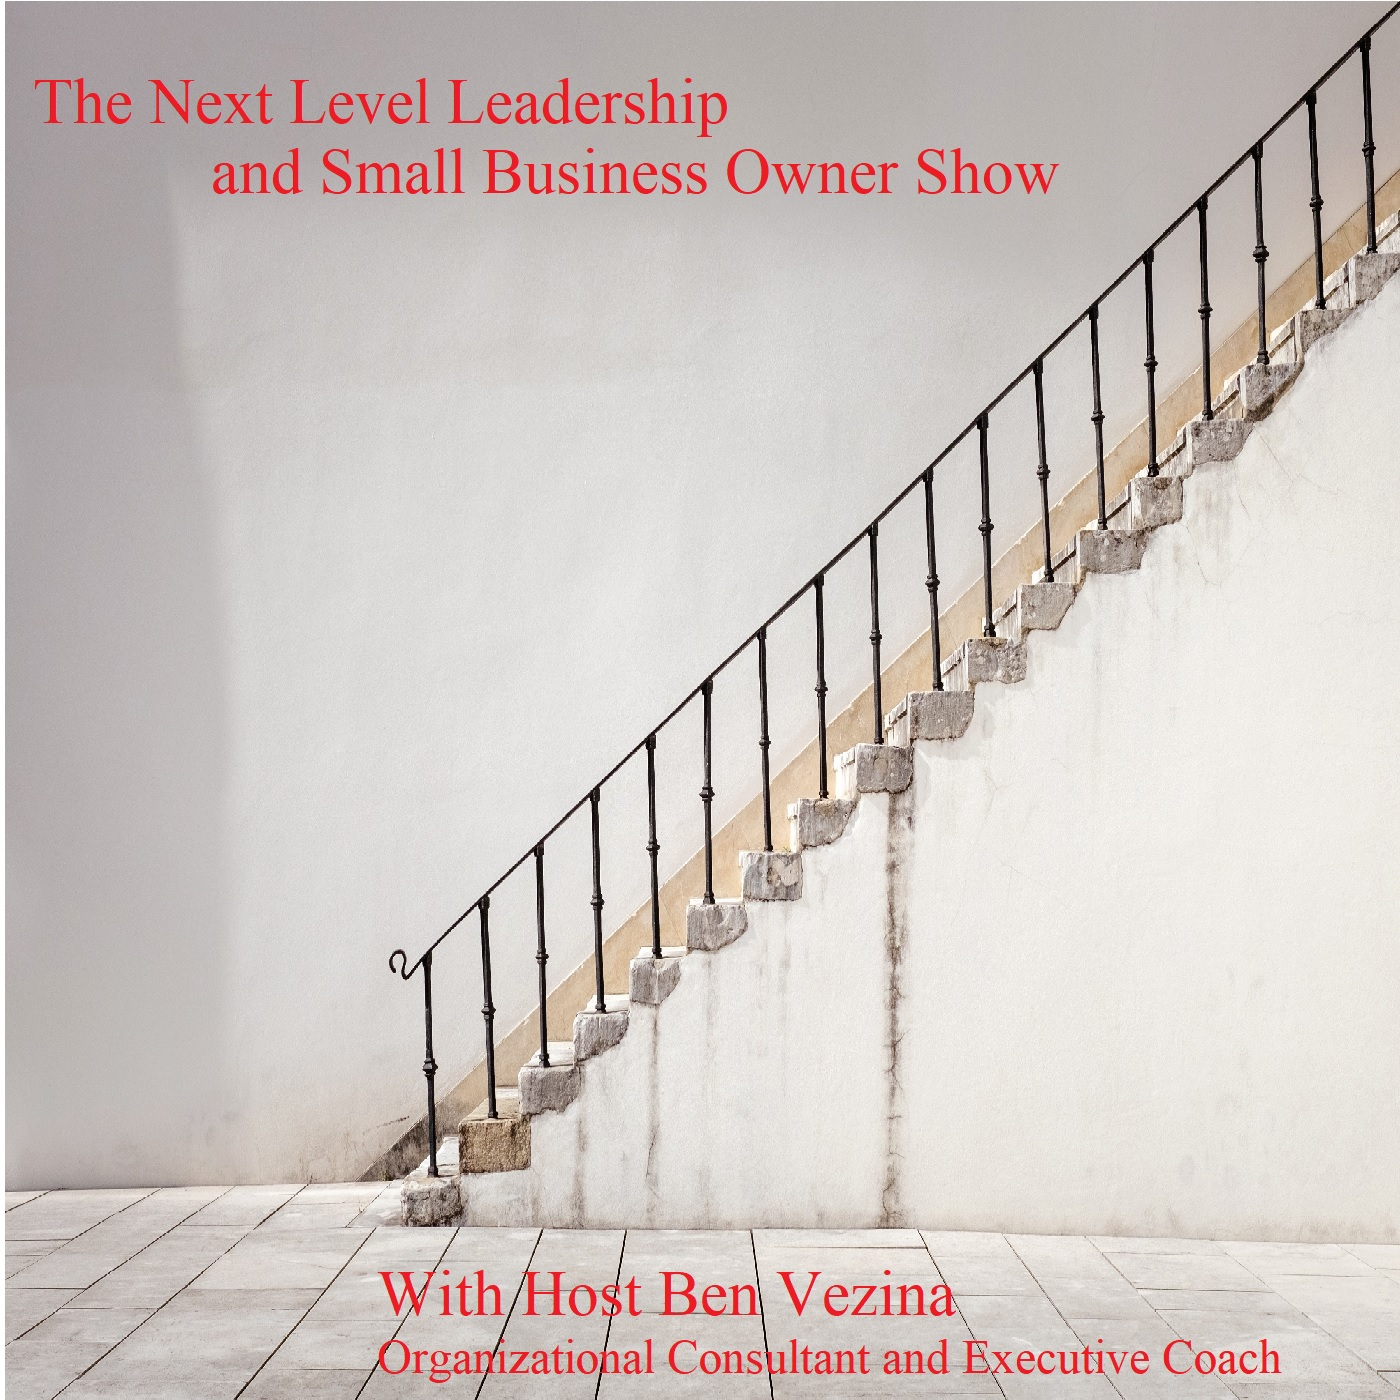 The Next Level Leadership and Entrepreneur Show